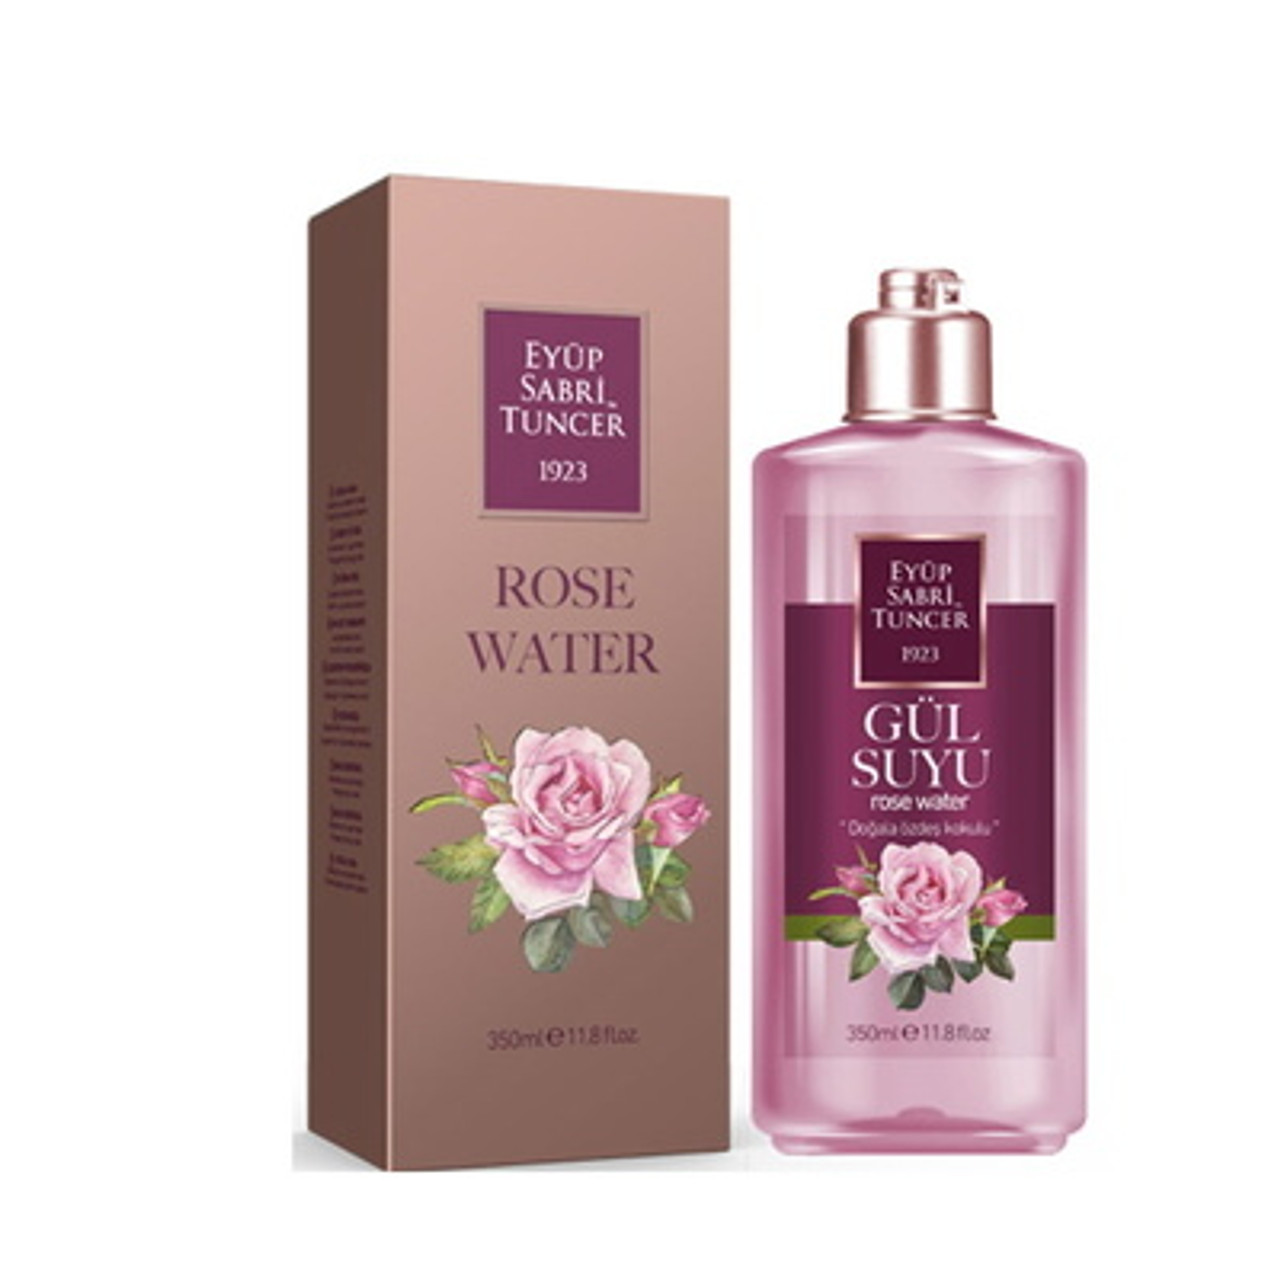 EYUP SABRI TUNCER ROSE WATER / GUL SUYU